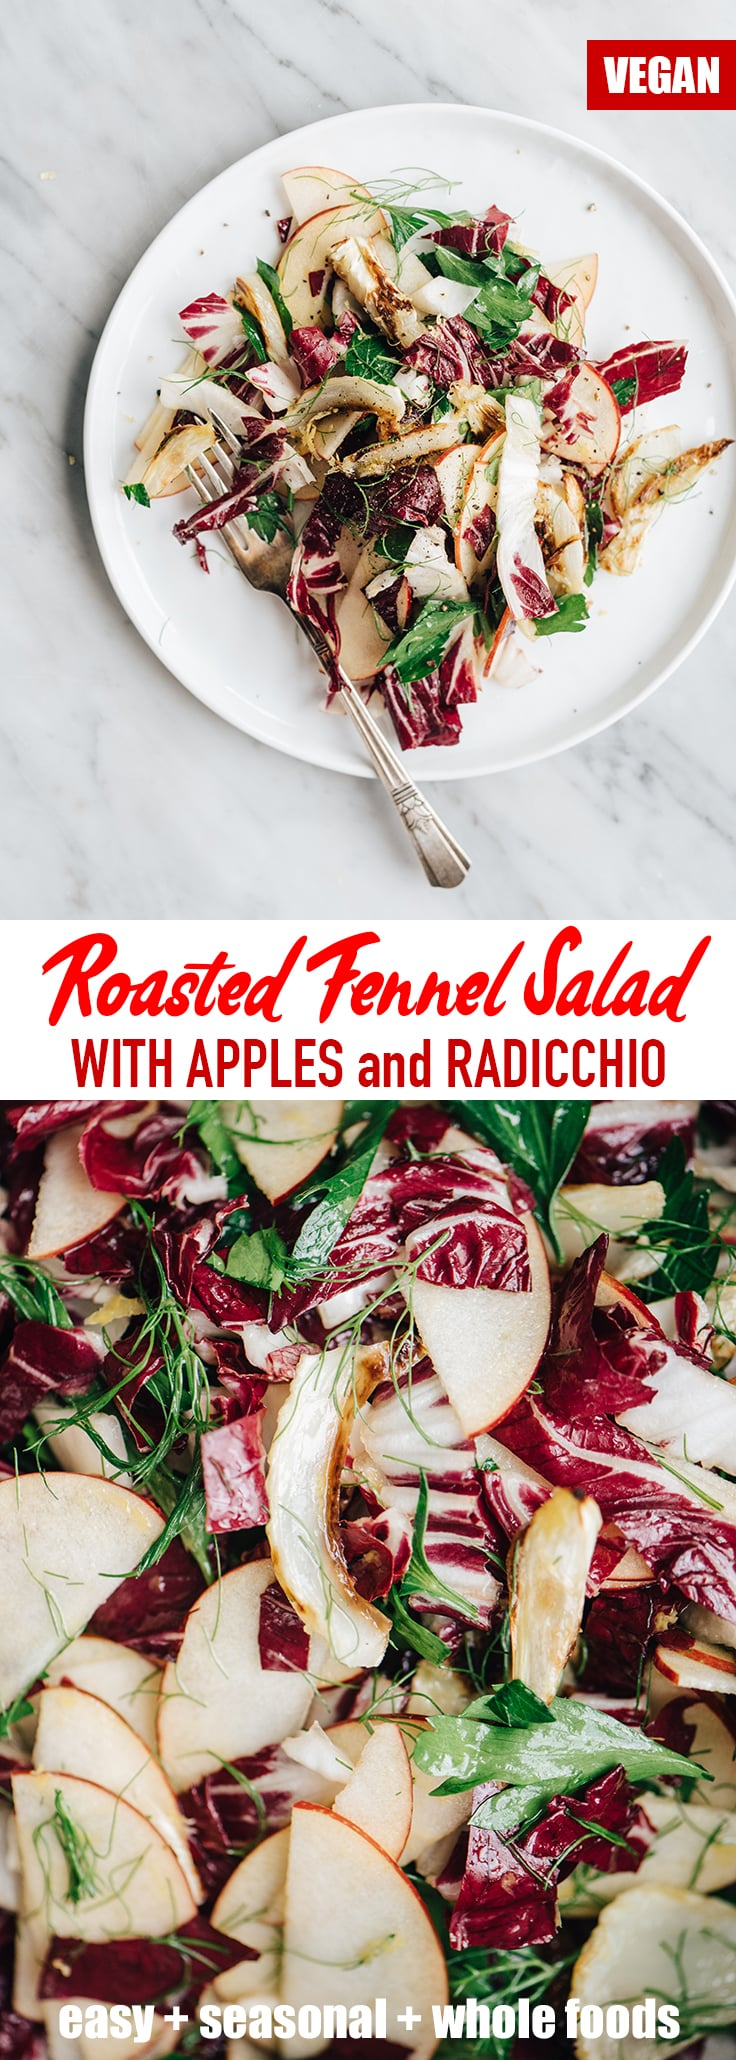 This roasted fennel salad with apples and radicchio is a bright, nutritious, fall salad recipe. It's sweet and nutty, hearty and satisfying. Perfect for a light vegetarian lunch or Thanksgiving salad side dish. #fennel #fall #salad #vegan #paleo #recipe